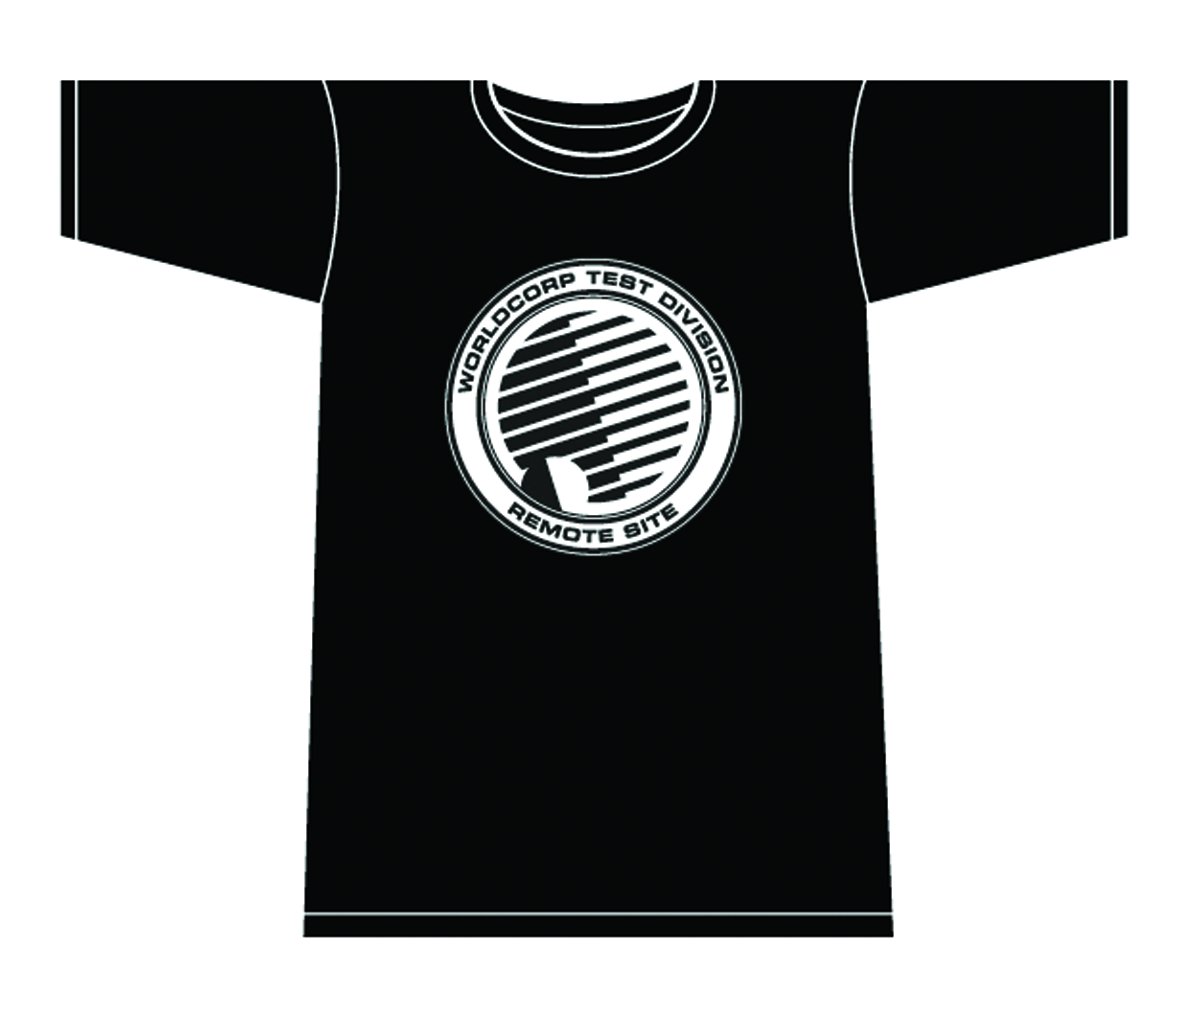 NOWHERE MEN WORLD CORP TEST DIVISION T/S BLK WOMENS LG